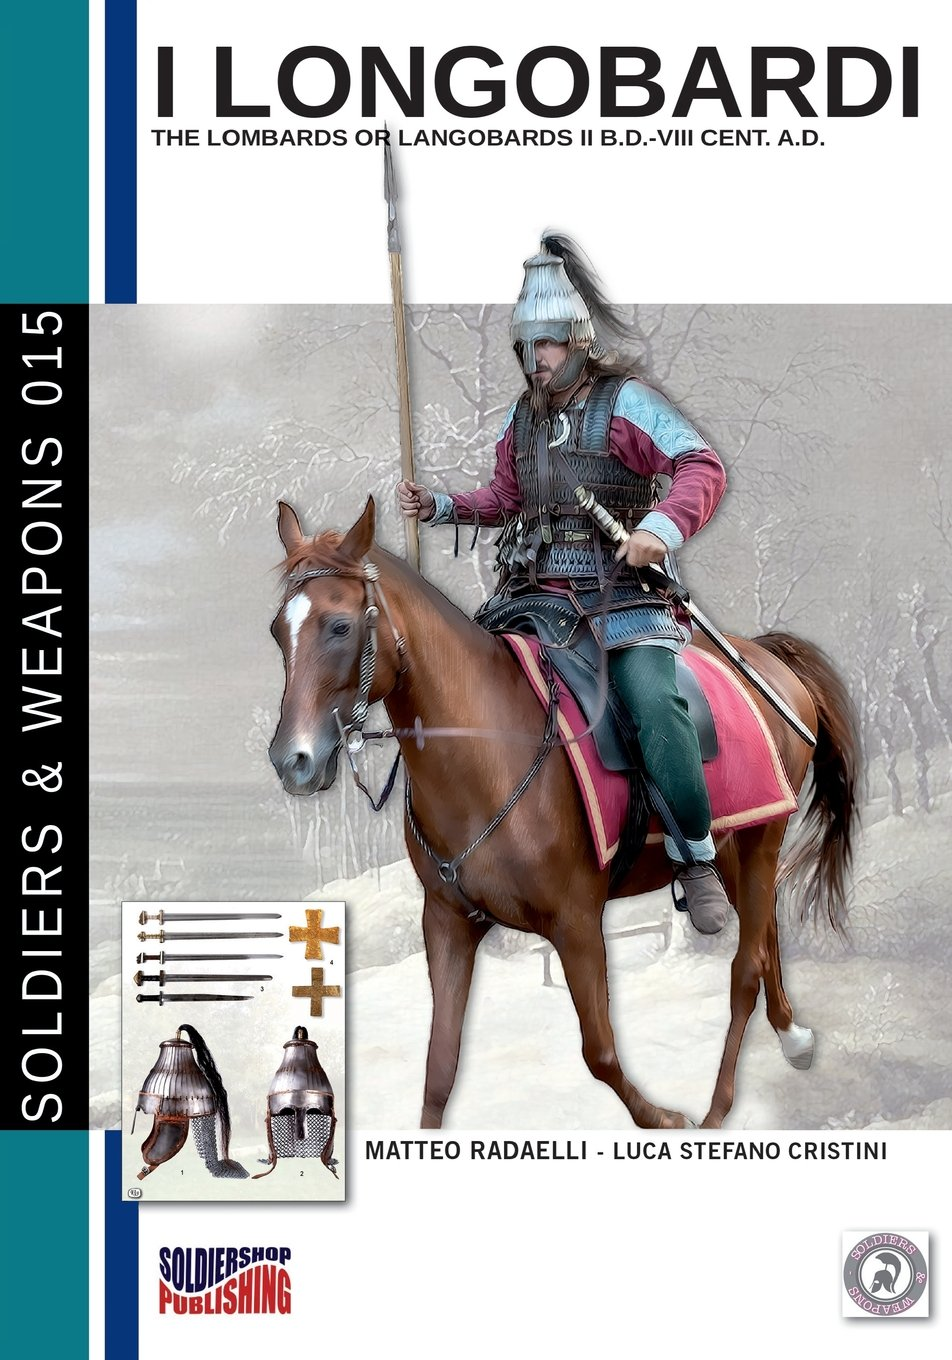 Read Online I Longobardi: The Lombards or Longobards II b.C-VIII cent. a.C. (Soldiers, Weapons & Uniforms) (Volume 15) (Italian Edition) pdf